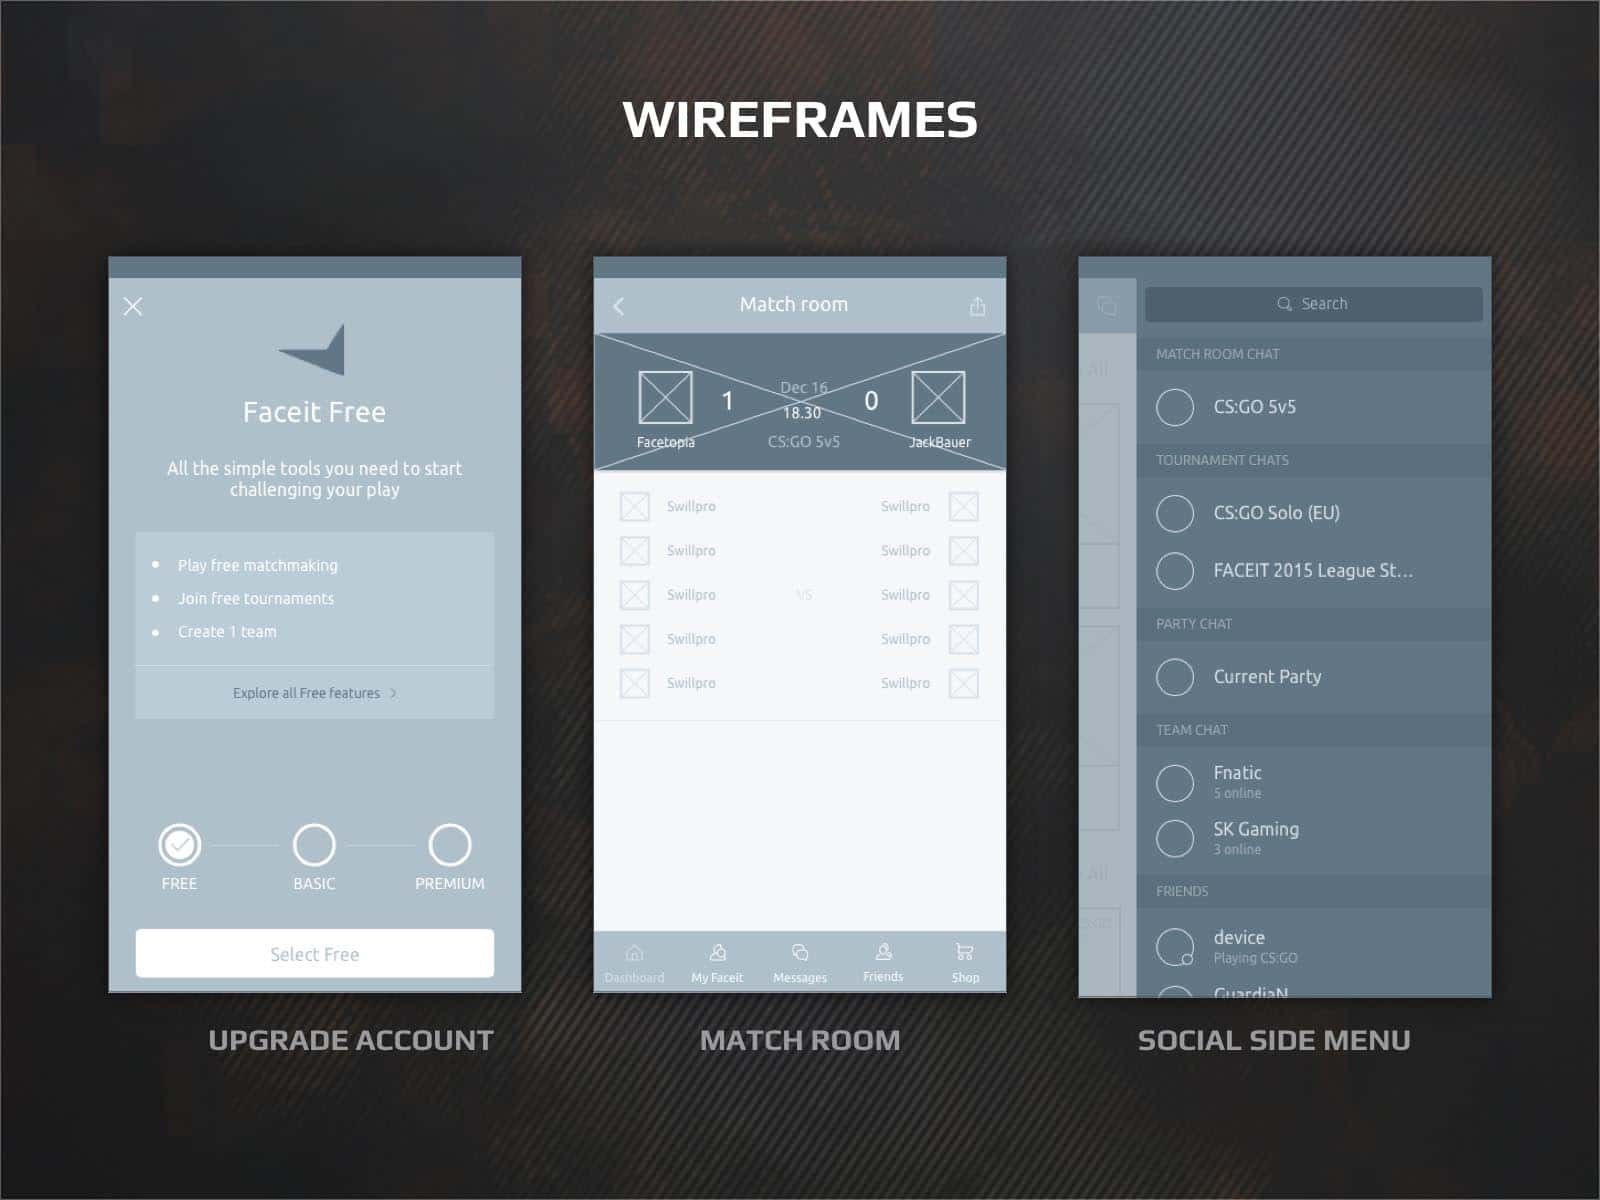 faceit app wireframes ux design and interactions